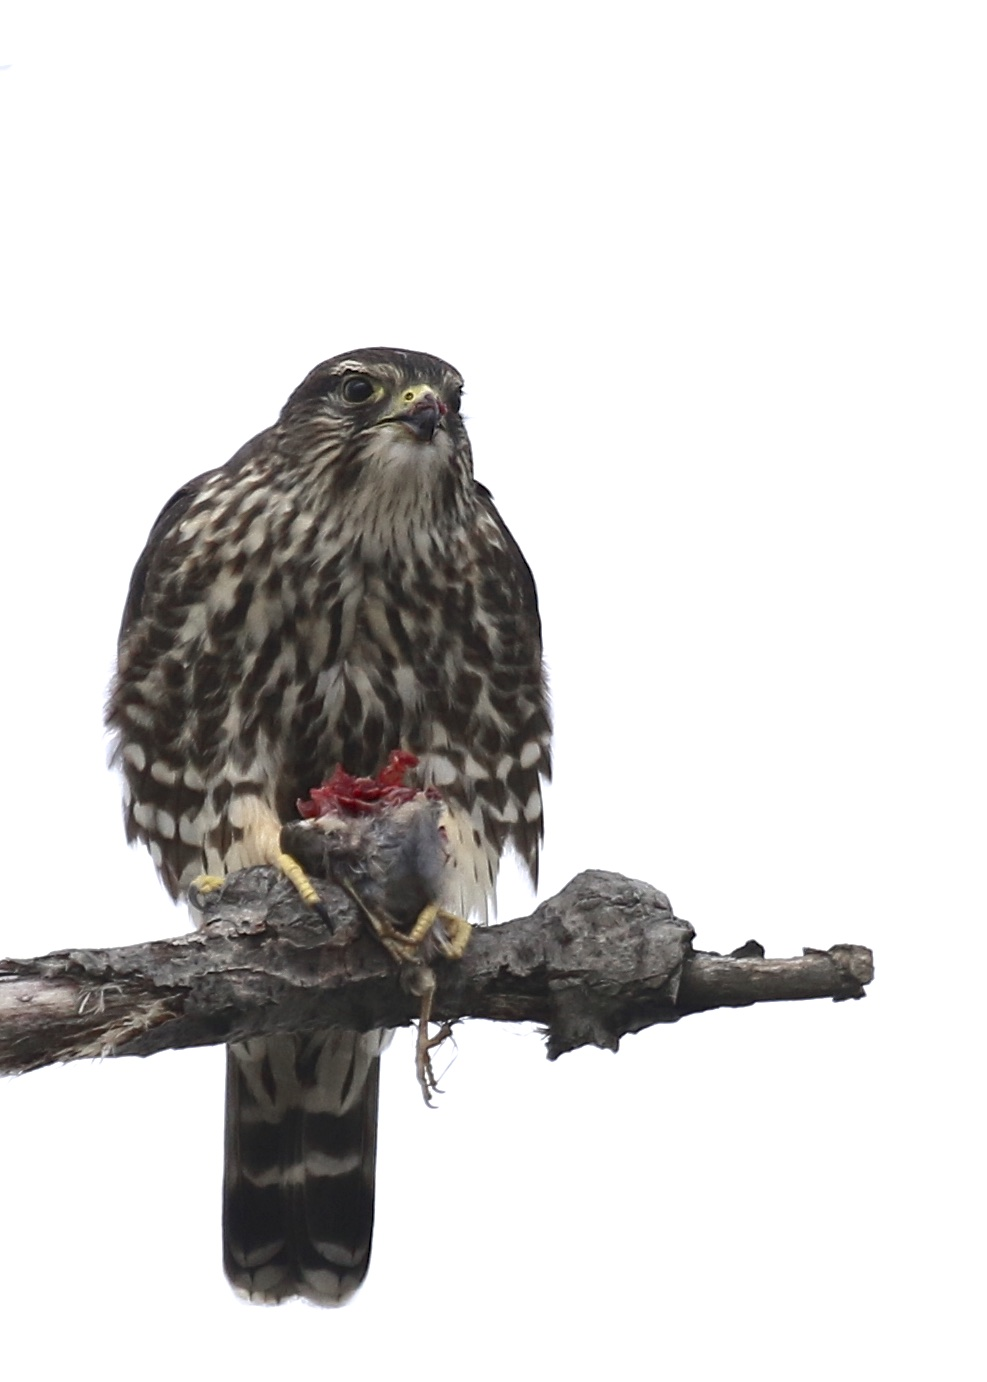 ~The highlight of the day for me - Merlin with prey at Piermont Pier, 1/9/16.~